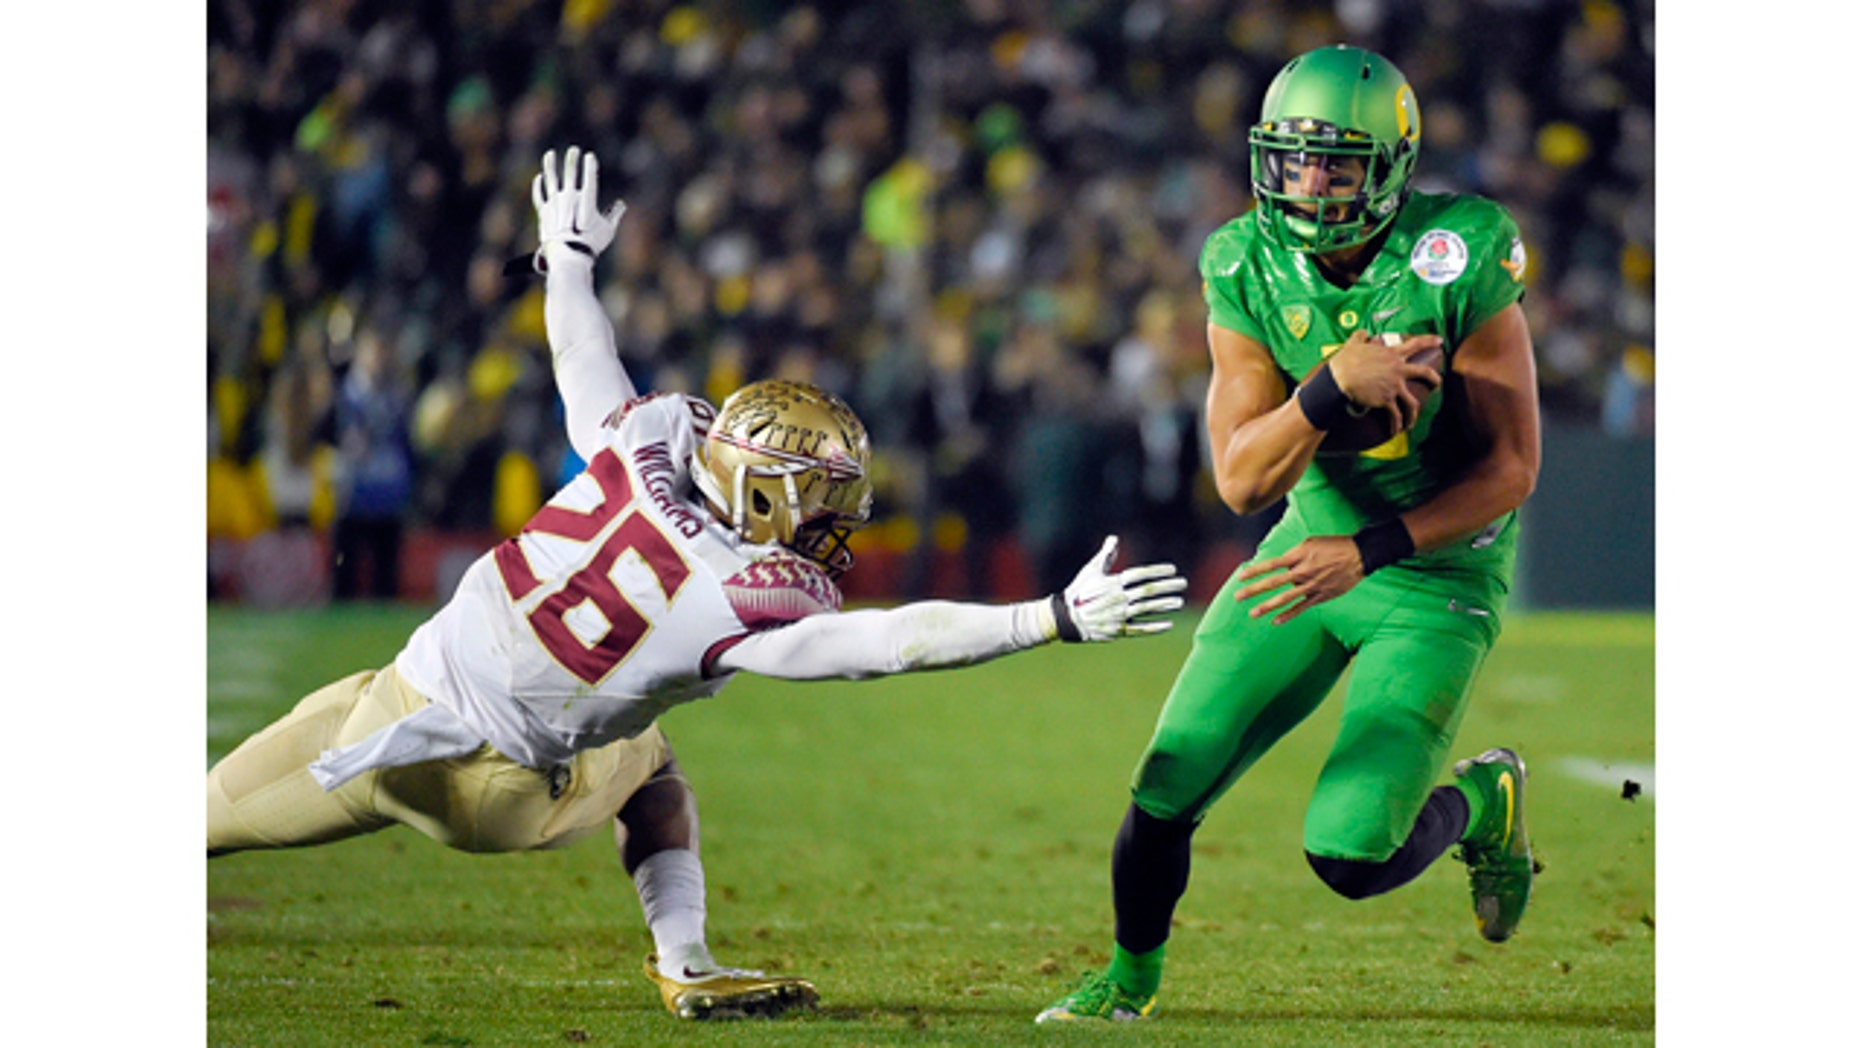 Jan. 1, 2015: Oregon quarterback Marcus Mariota, right, scores past Florida State defensive back P.J. Williams during the second half of the Rose Bowl NCAA college football playoff semifinal in Pasadena, Calif. (AP Photo/Mark J. Terrill)